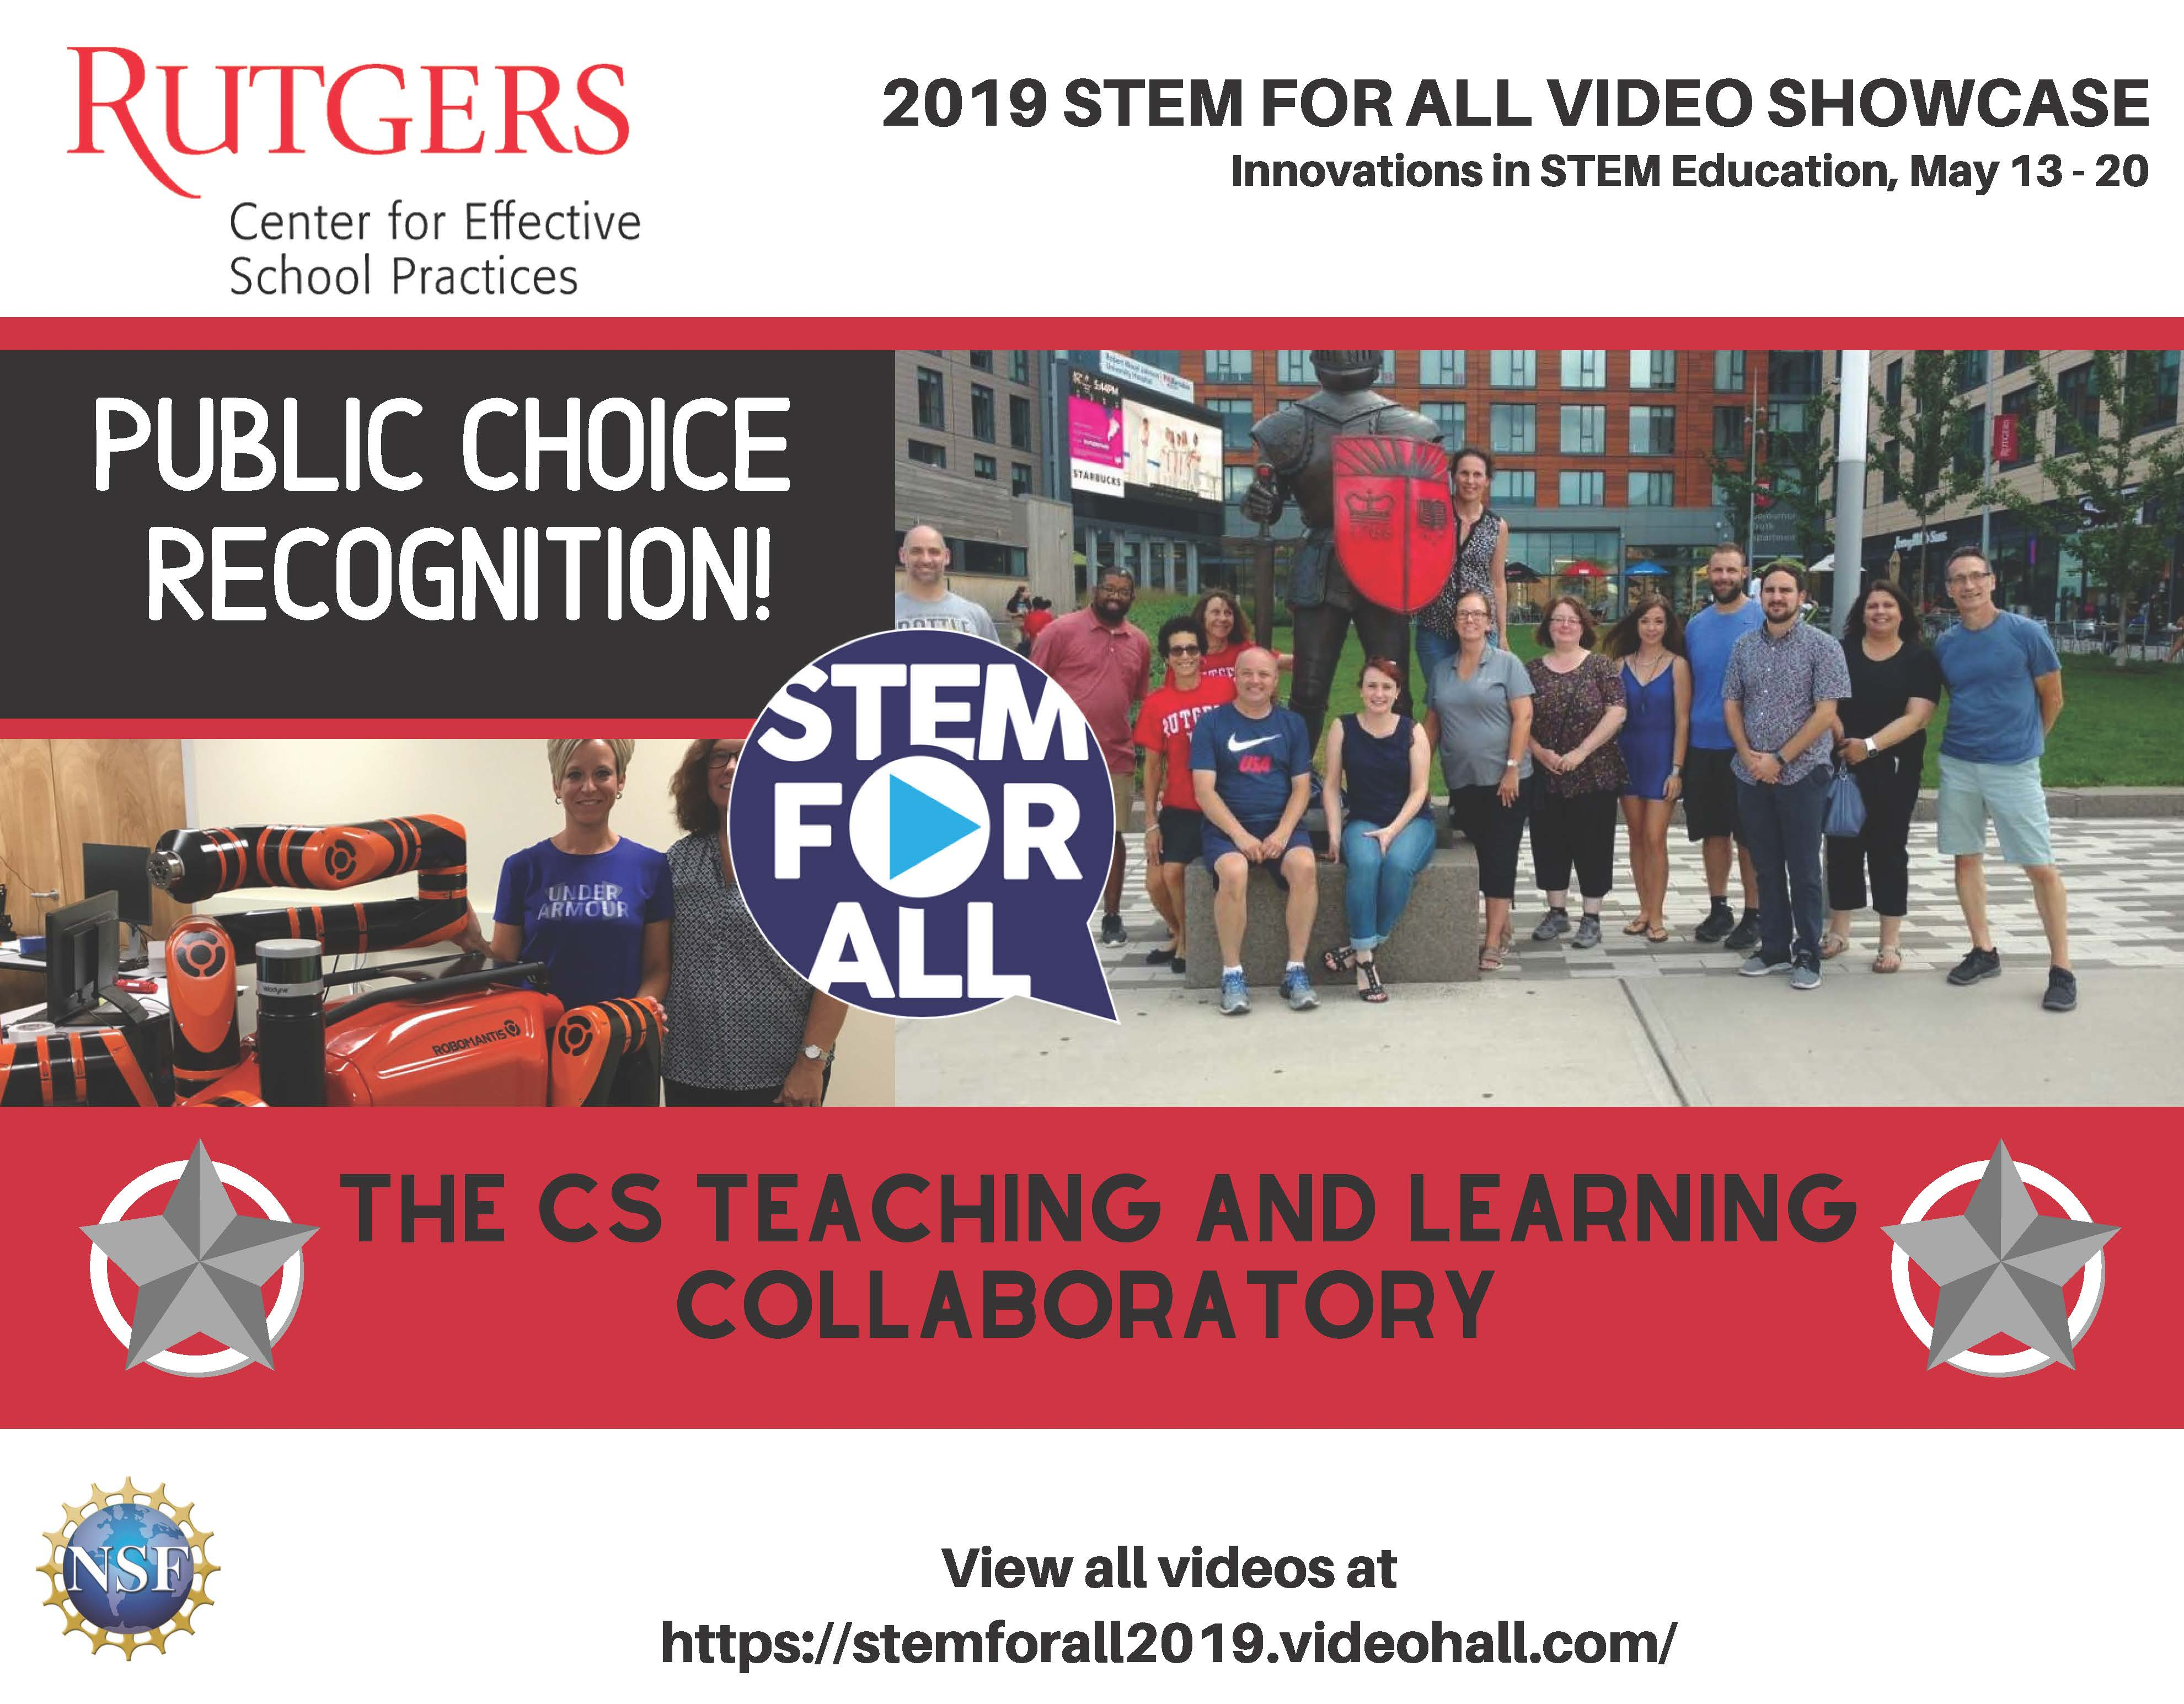 2019 STEM FOR ALL VIDEO SHOWCASE